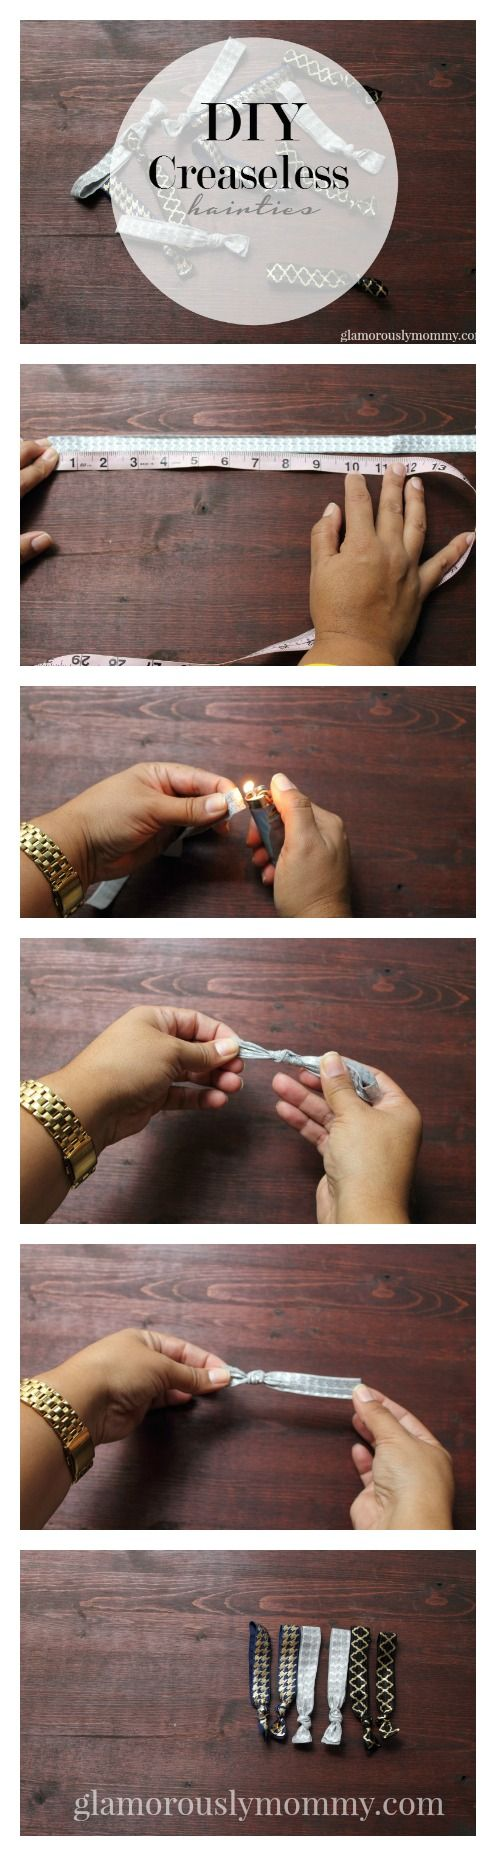 Save your money and make your own Creaseless Hair Ties. It\'s so simple and quick. Find out how Tawny from GlamorouslyMommy.com made her own for under $2 #DIY